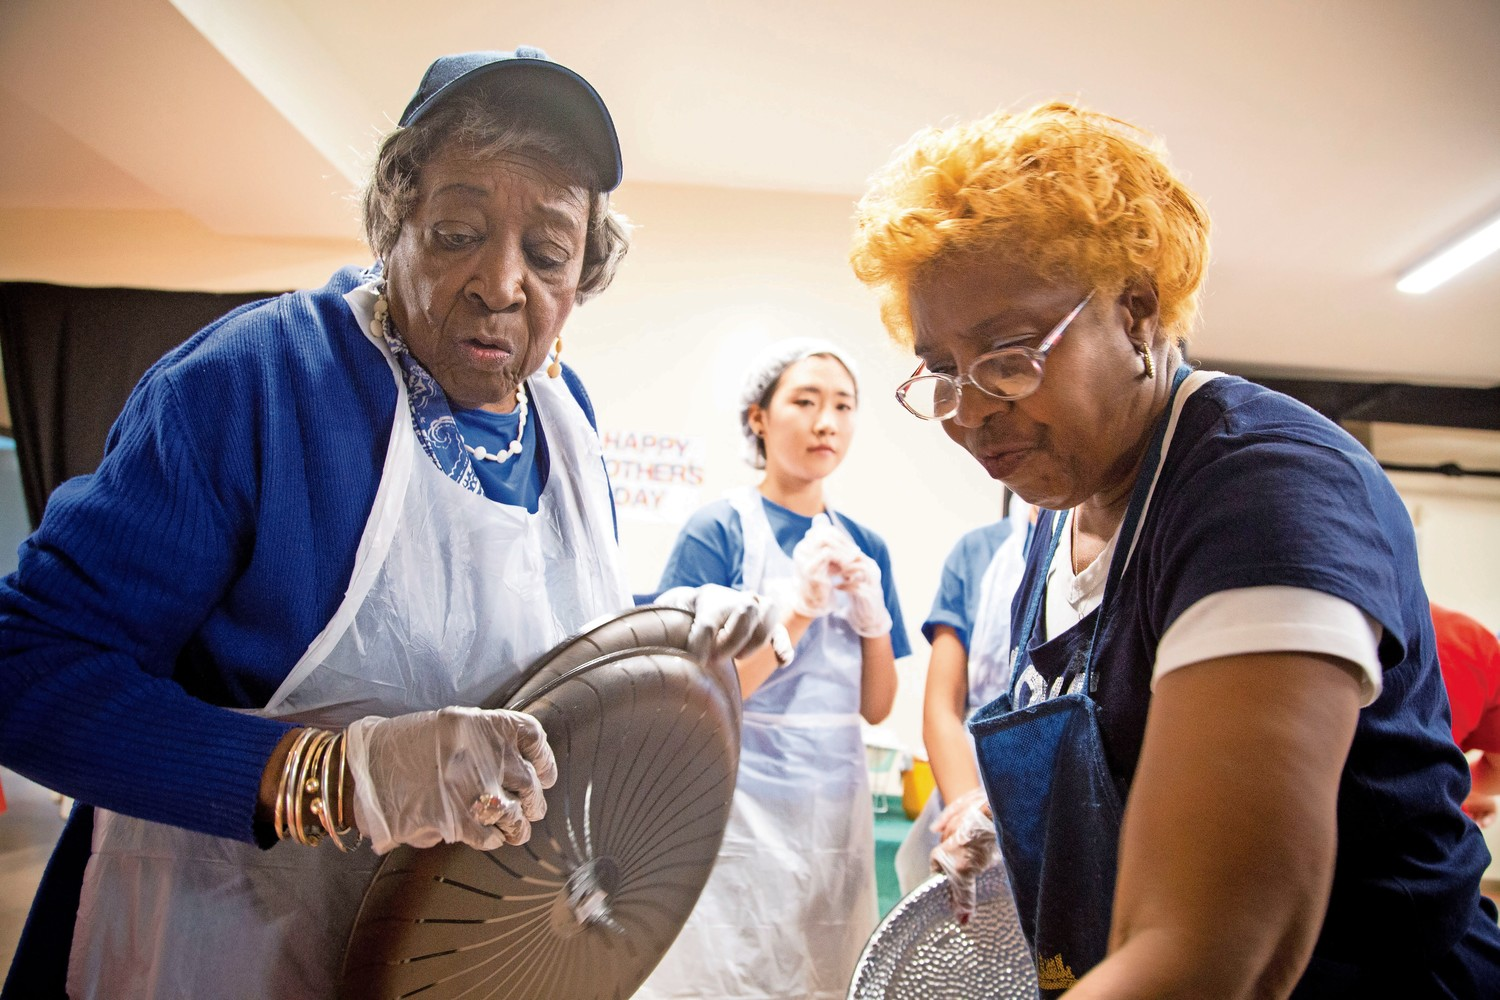 Gloria Hobbs, left, and Norma Cornish pick up trays, and get ready to serve food at the Caldwell Temple Soup Kitchen.